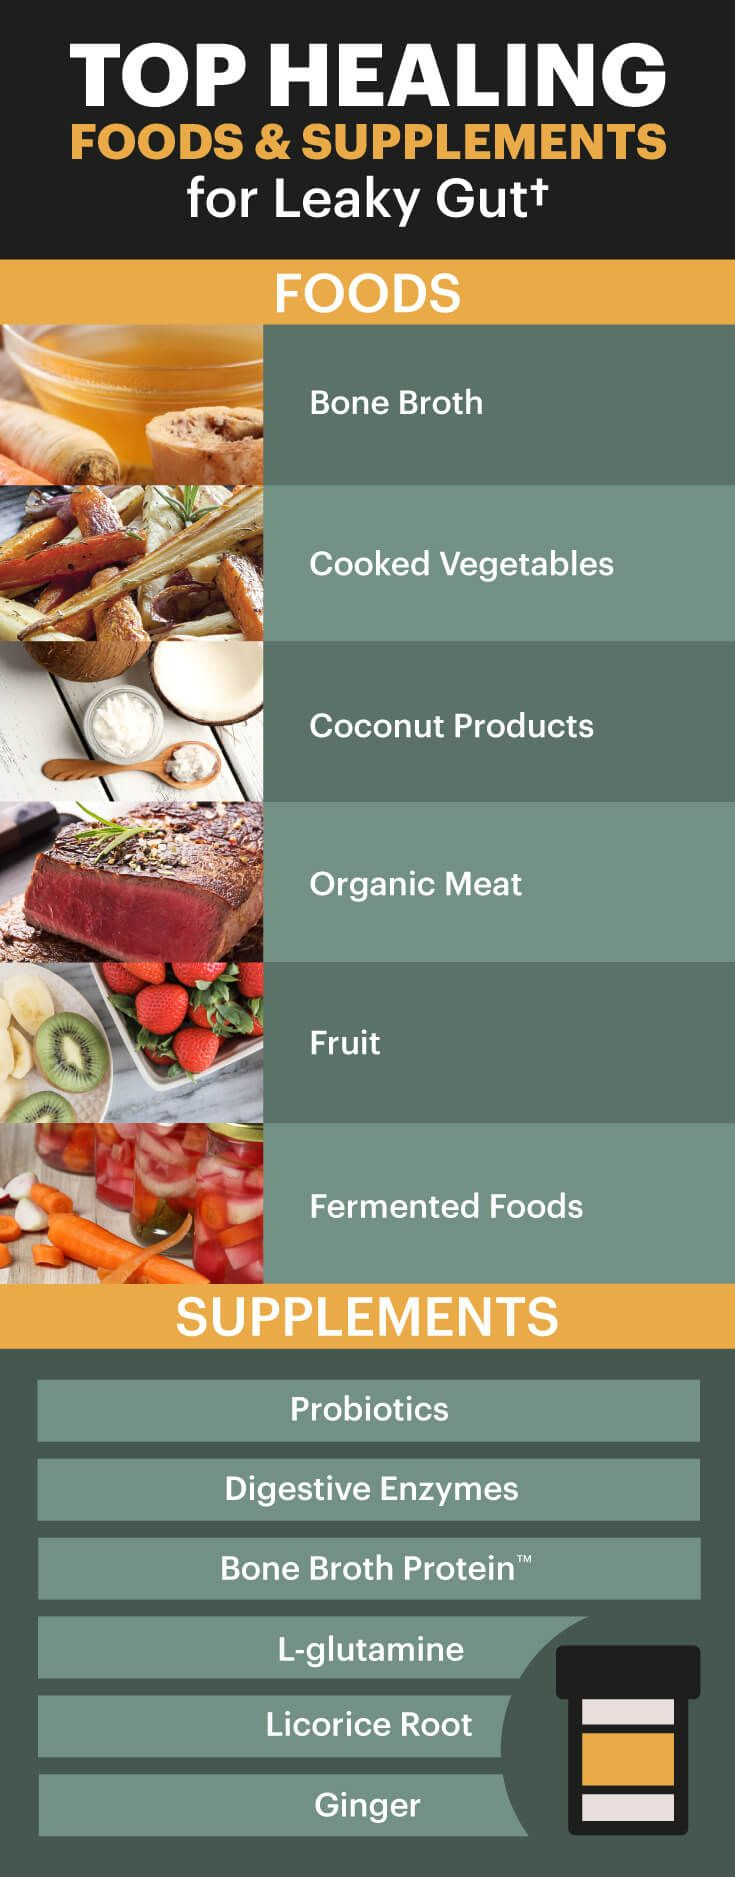 Top foods and supplements for leaky gut - Dr. Axe